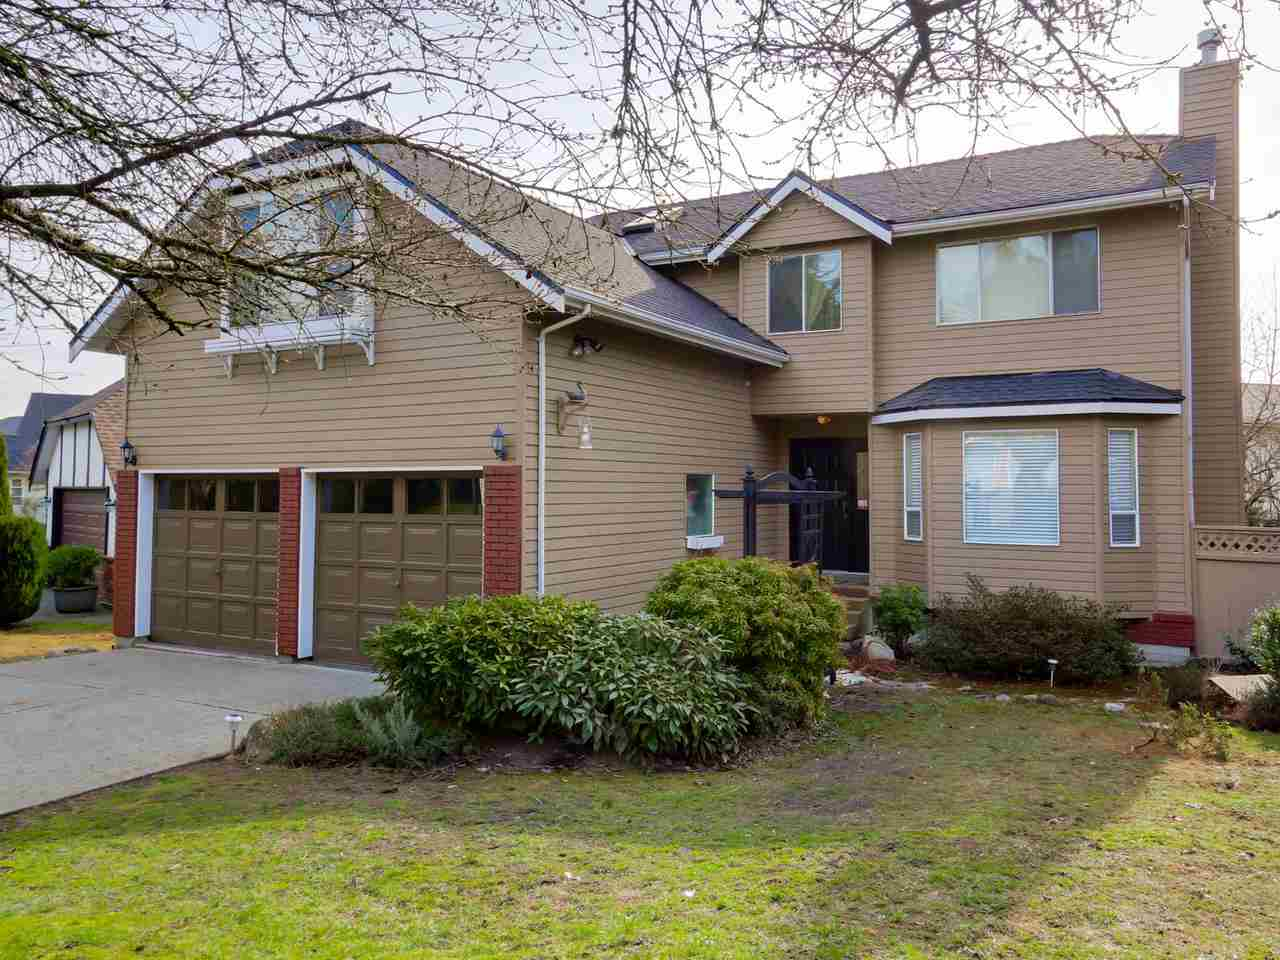 FEATURED LISTING: 2868 TEMPE KNOLL Drive North Vancouver